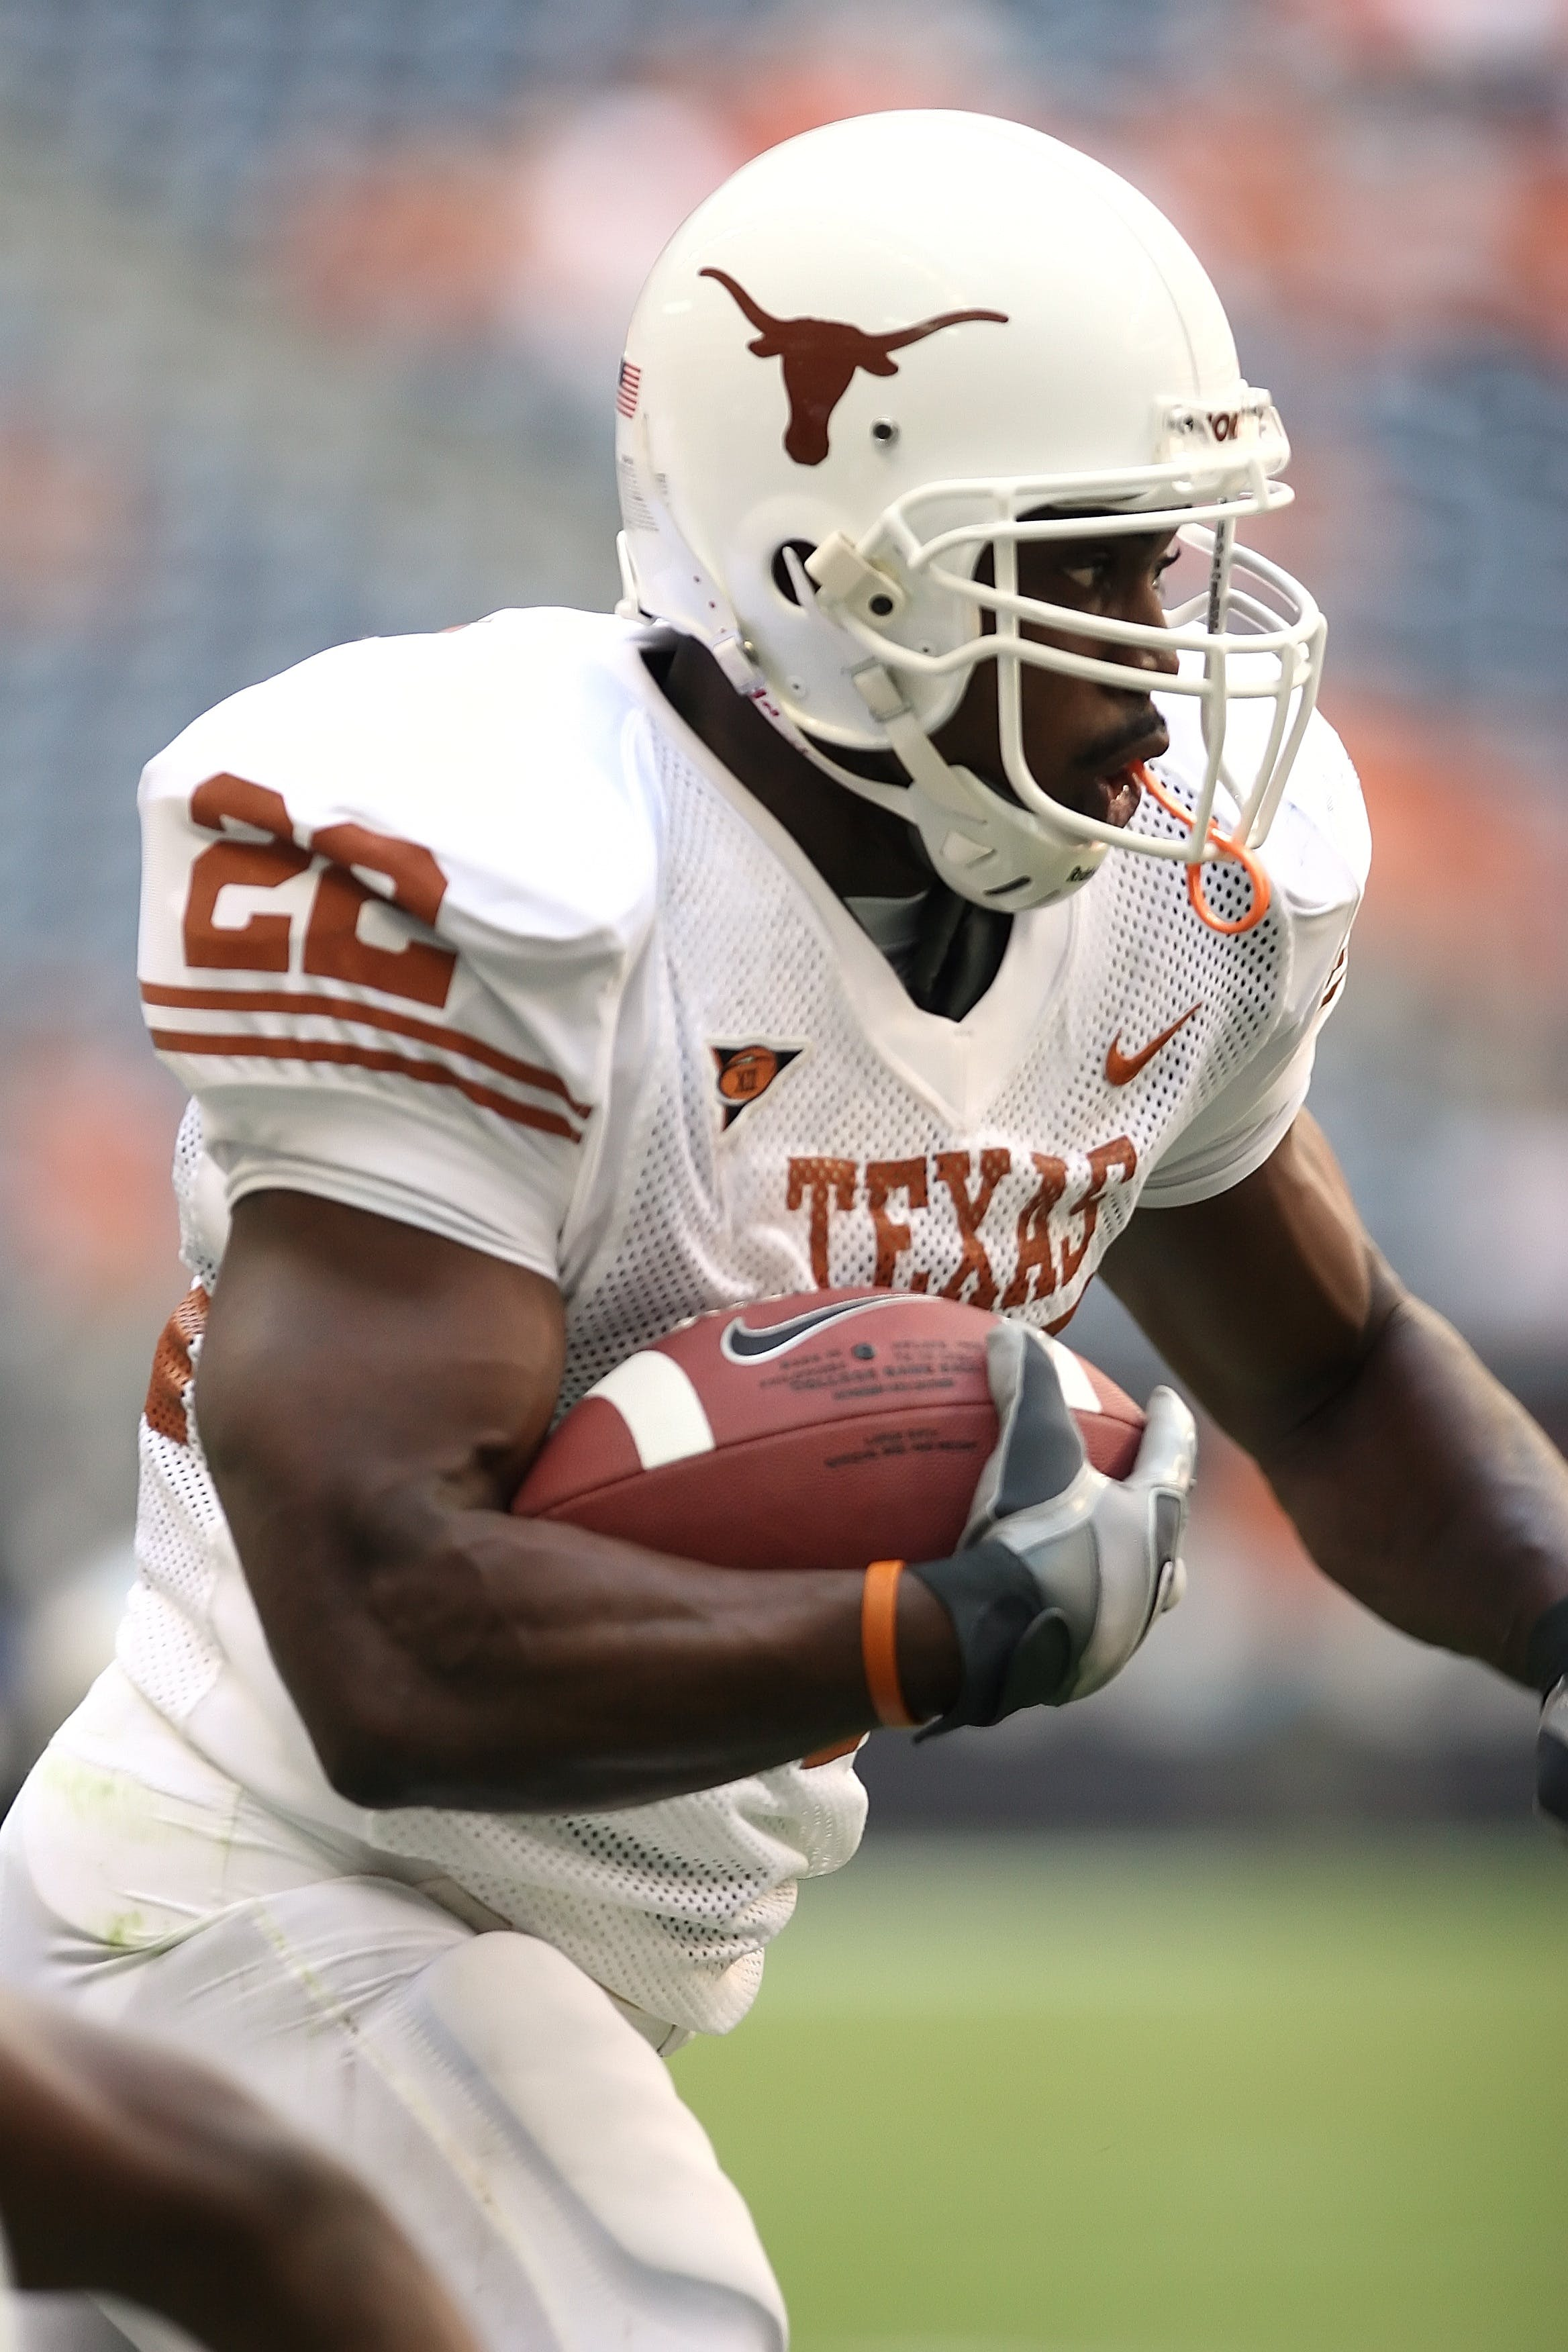 Man Wearing Texas Nike 22 Jersey Holding Ball and Running during Daytime